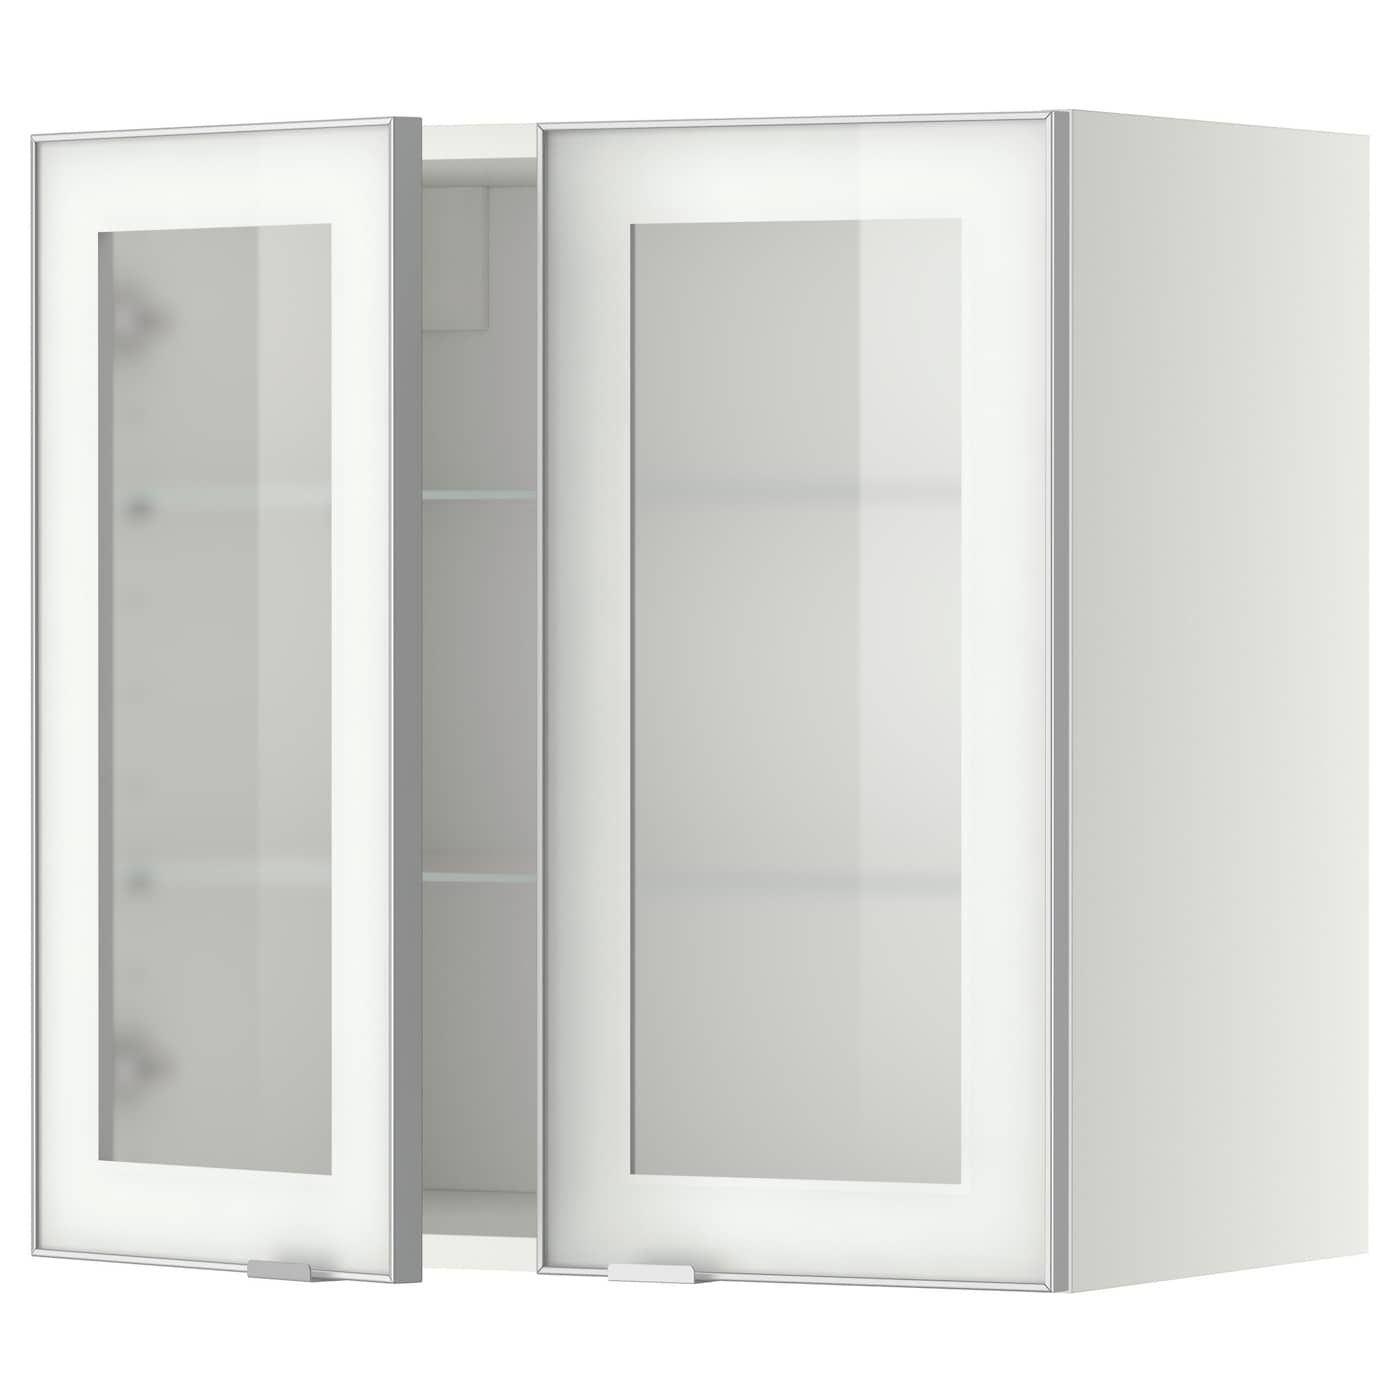 Wall Cabinet W Shelves 2 Glass Drs Metod White Jutis Frosted Glass